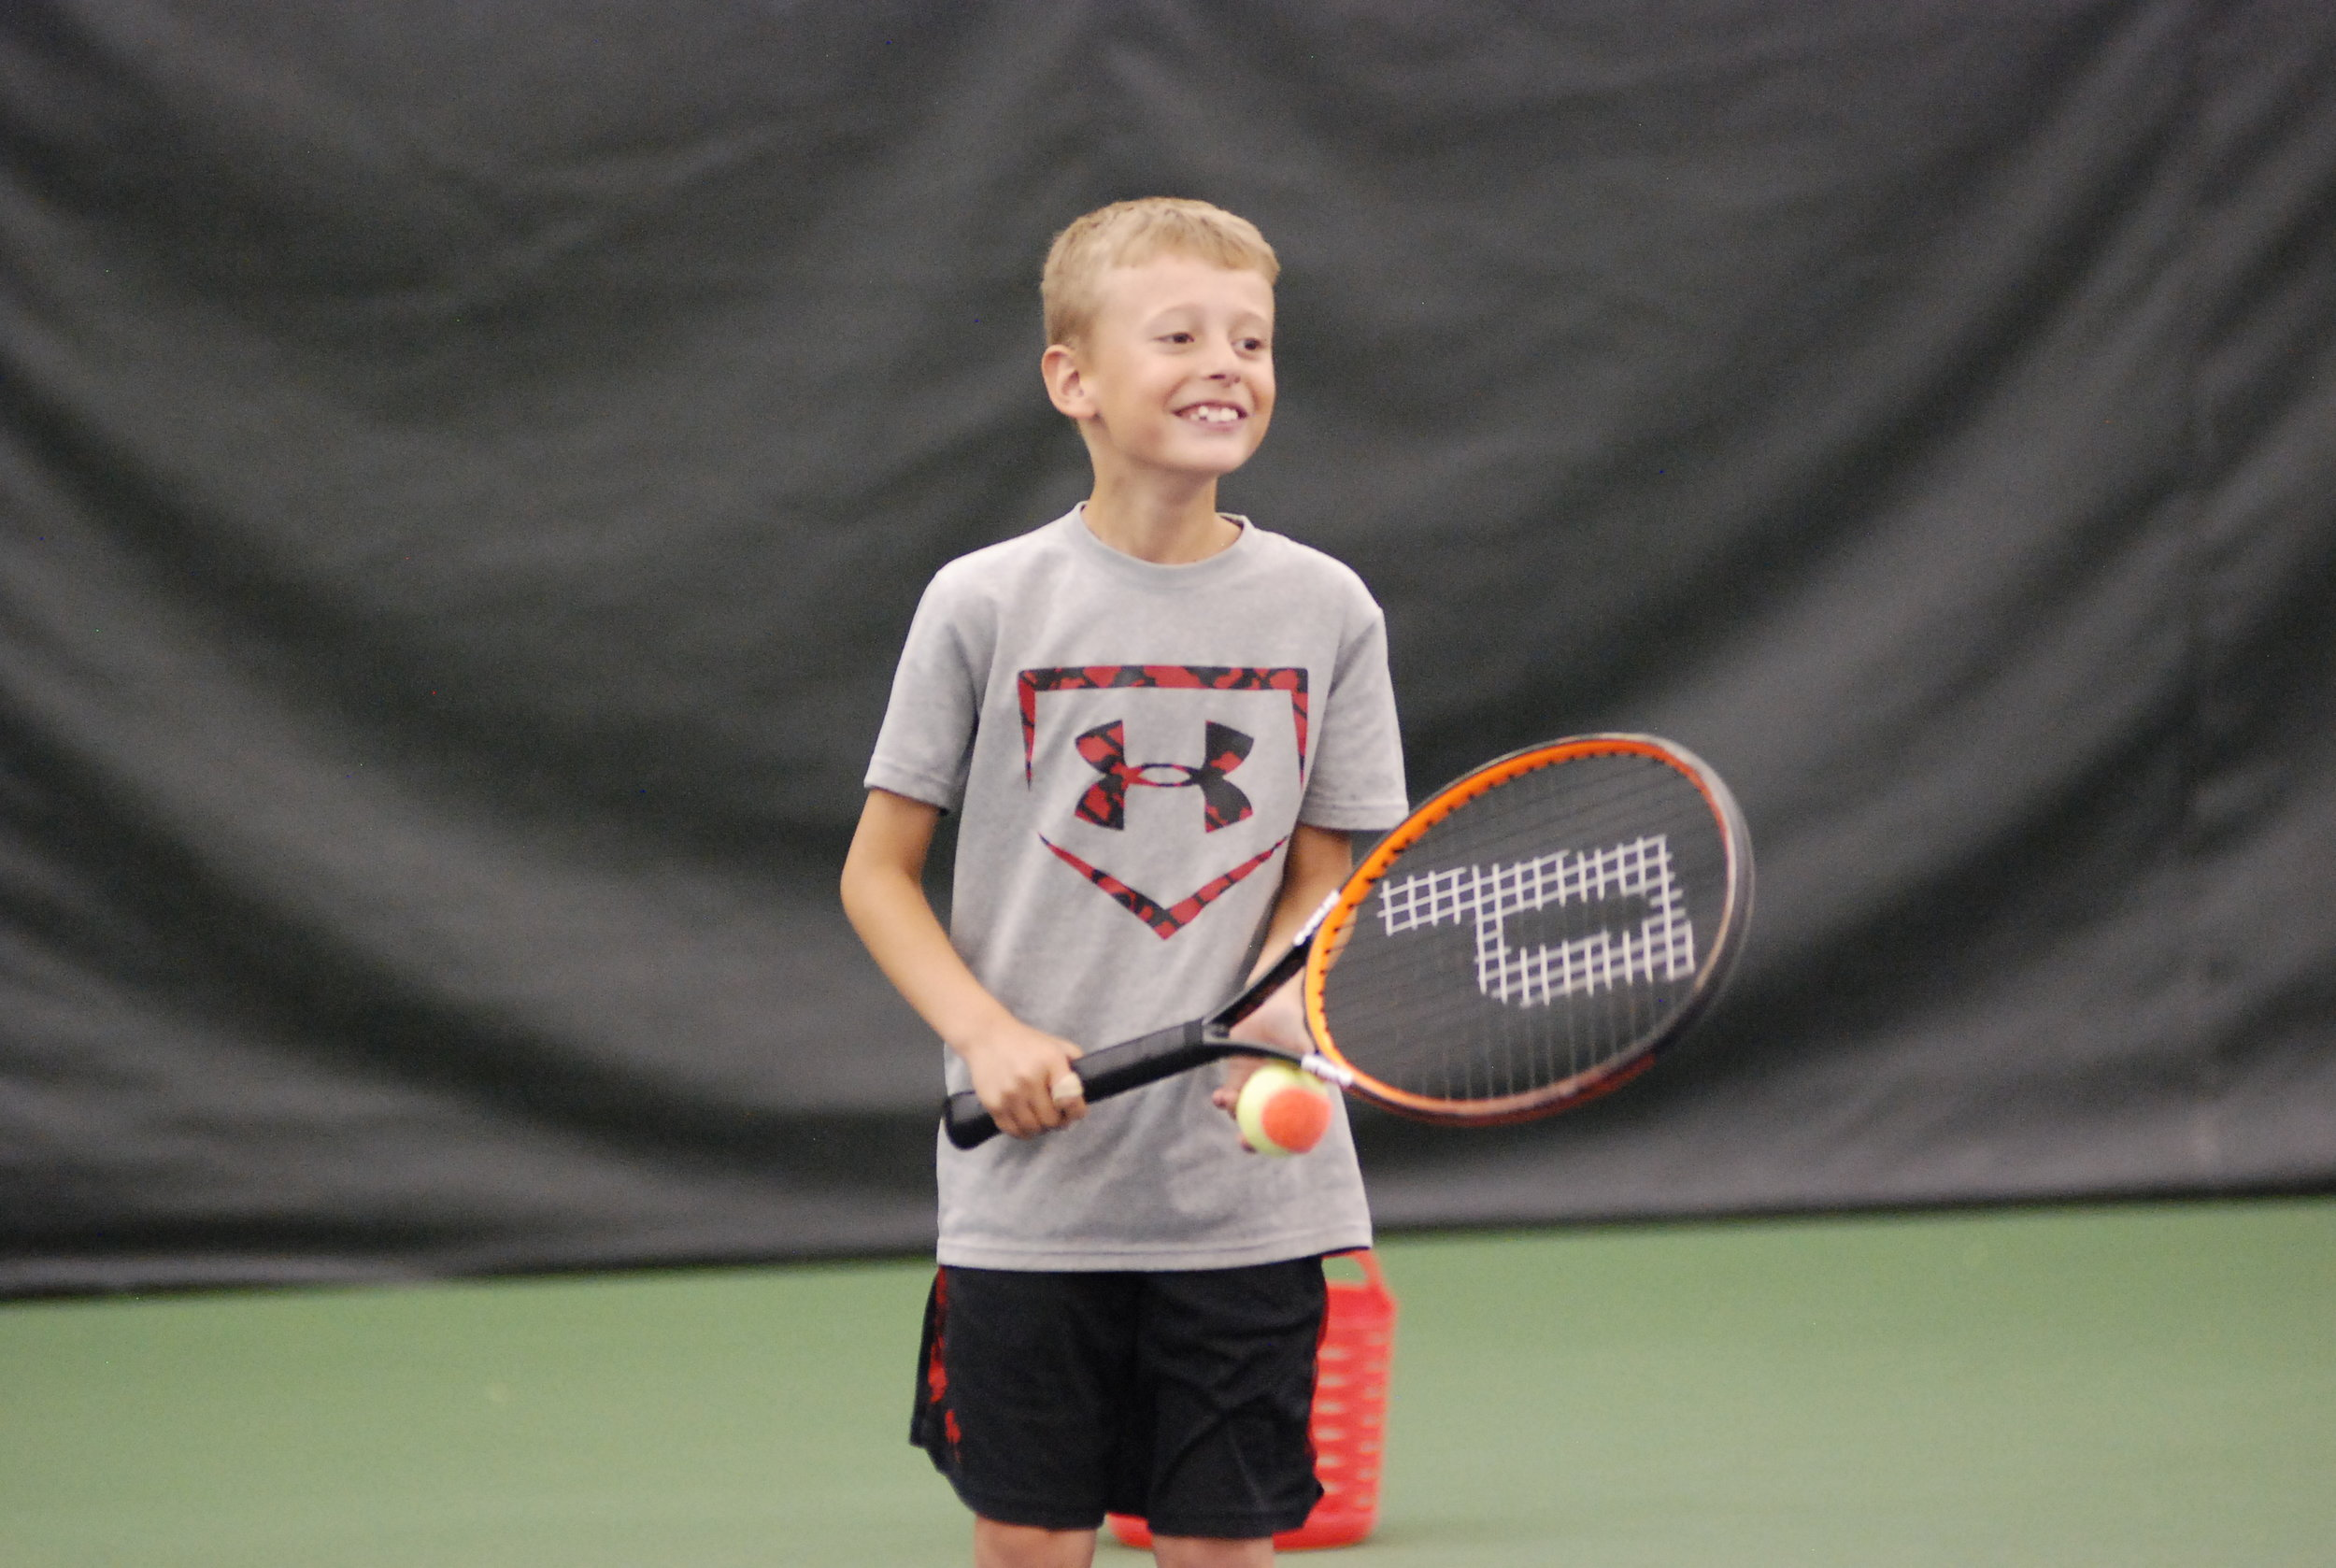 JUNIOR DEVELOPMENT  Pre-School & Elementary Programs  Start young, play for a lifetime of fitness and health! From preschool to high school, our junior development programs are designed to build skill, confidence and to be fun too!   TENNIS WHIZZ    10 & UNDER TENNIS